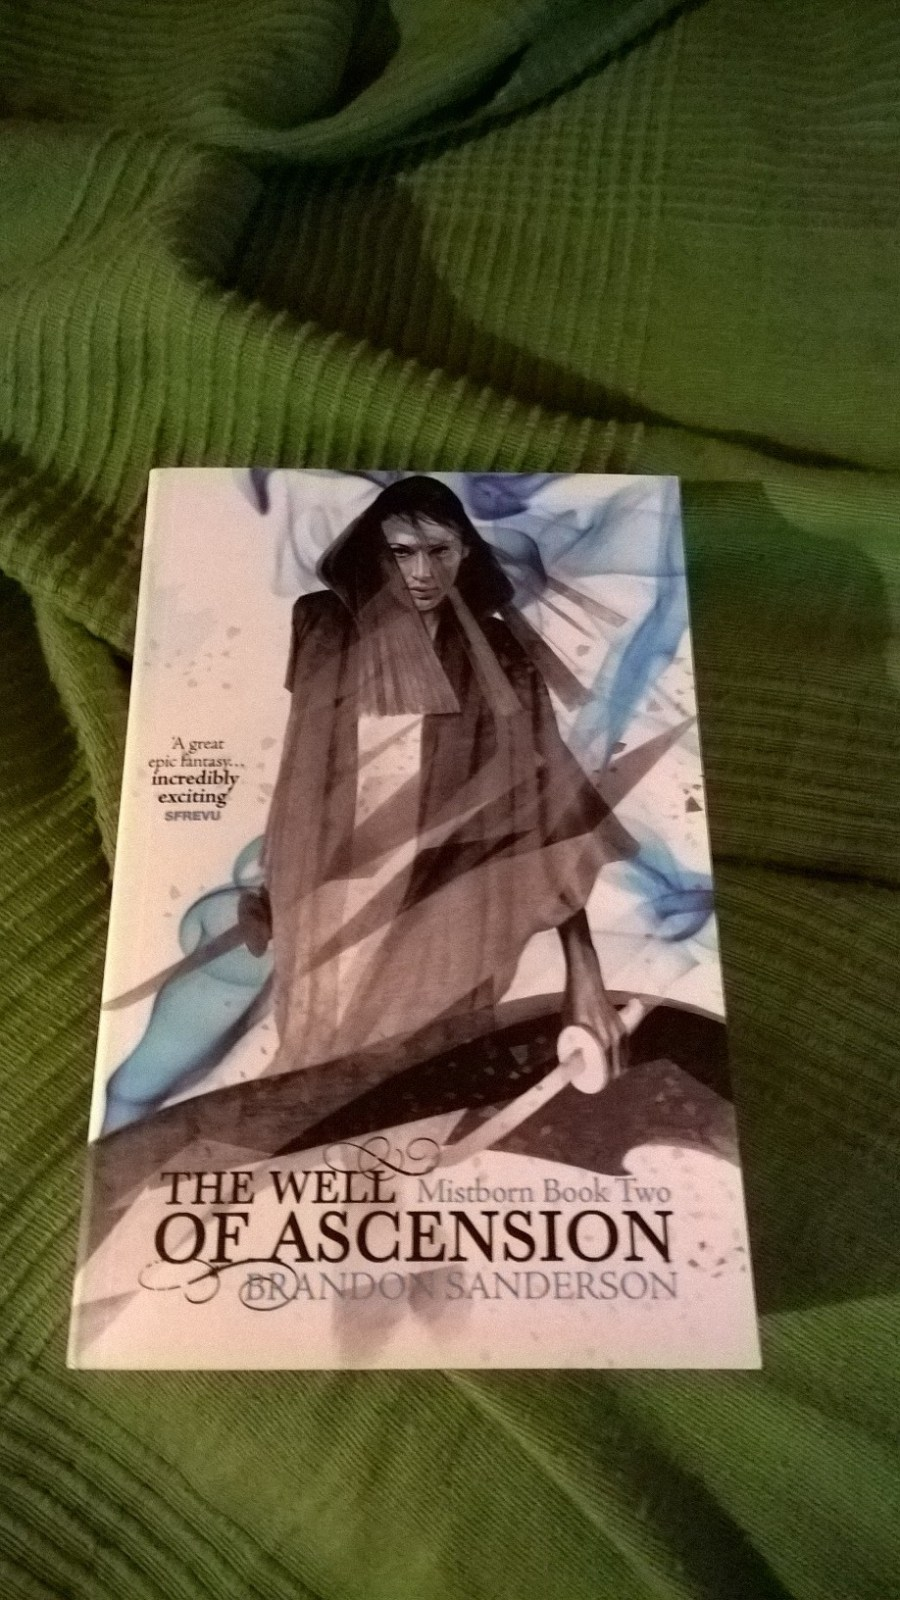 Brandon Sanderson - The Well of Ascension (Mistborn 2)